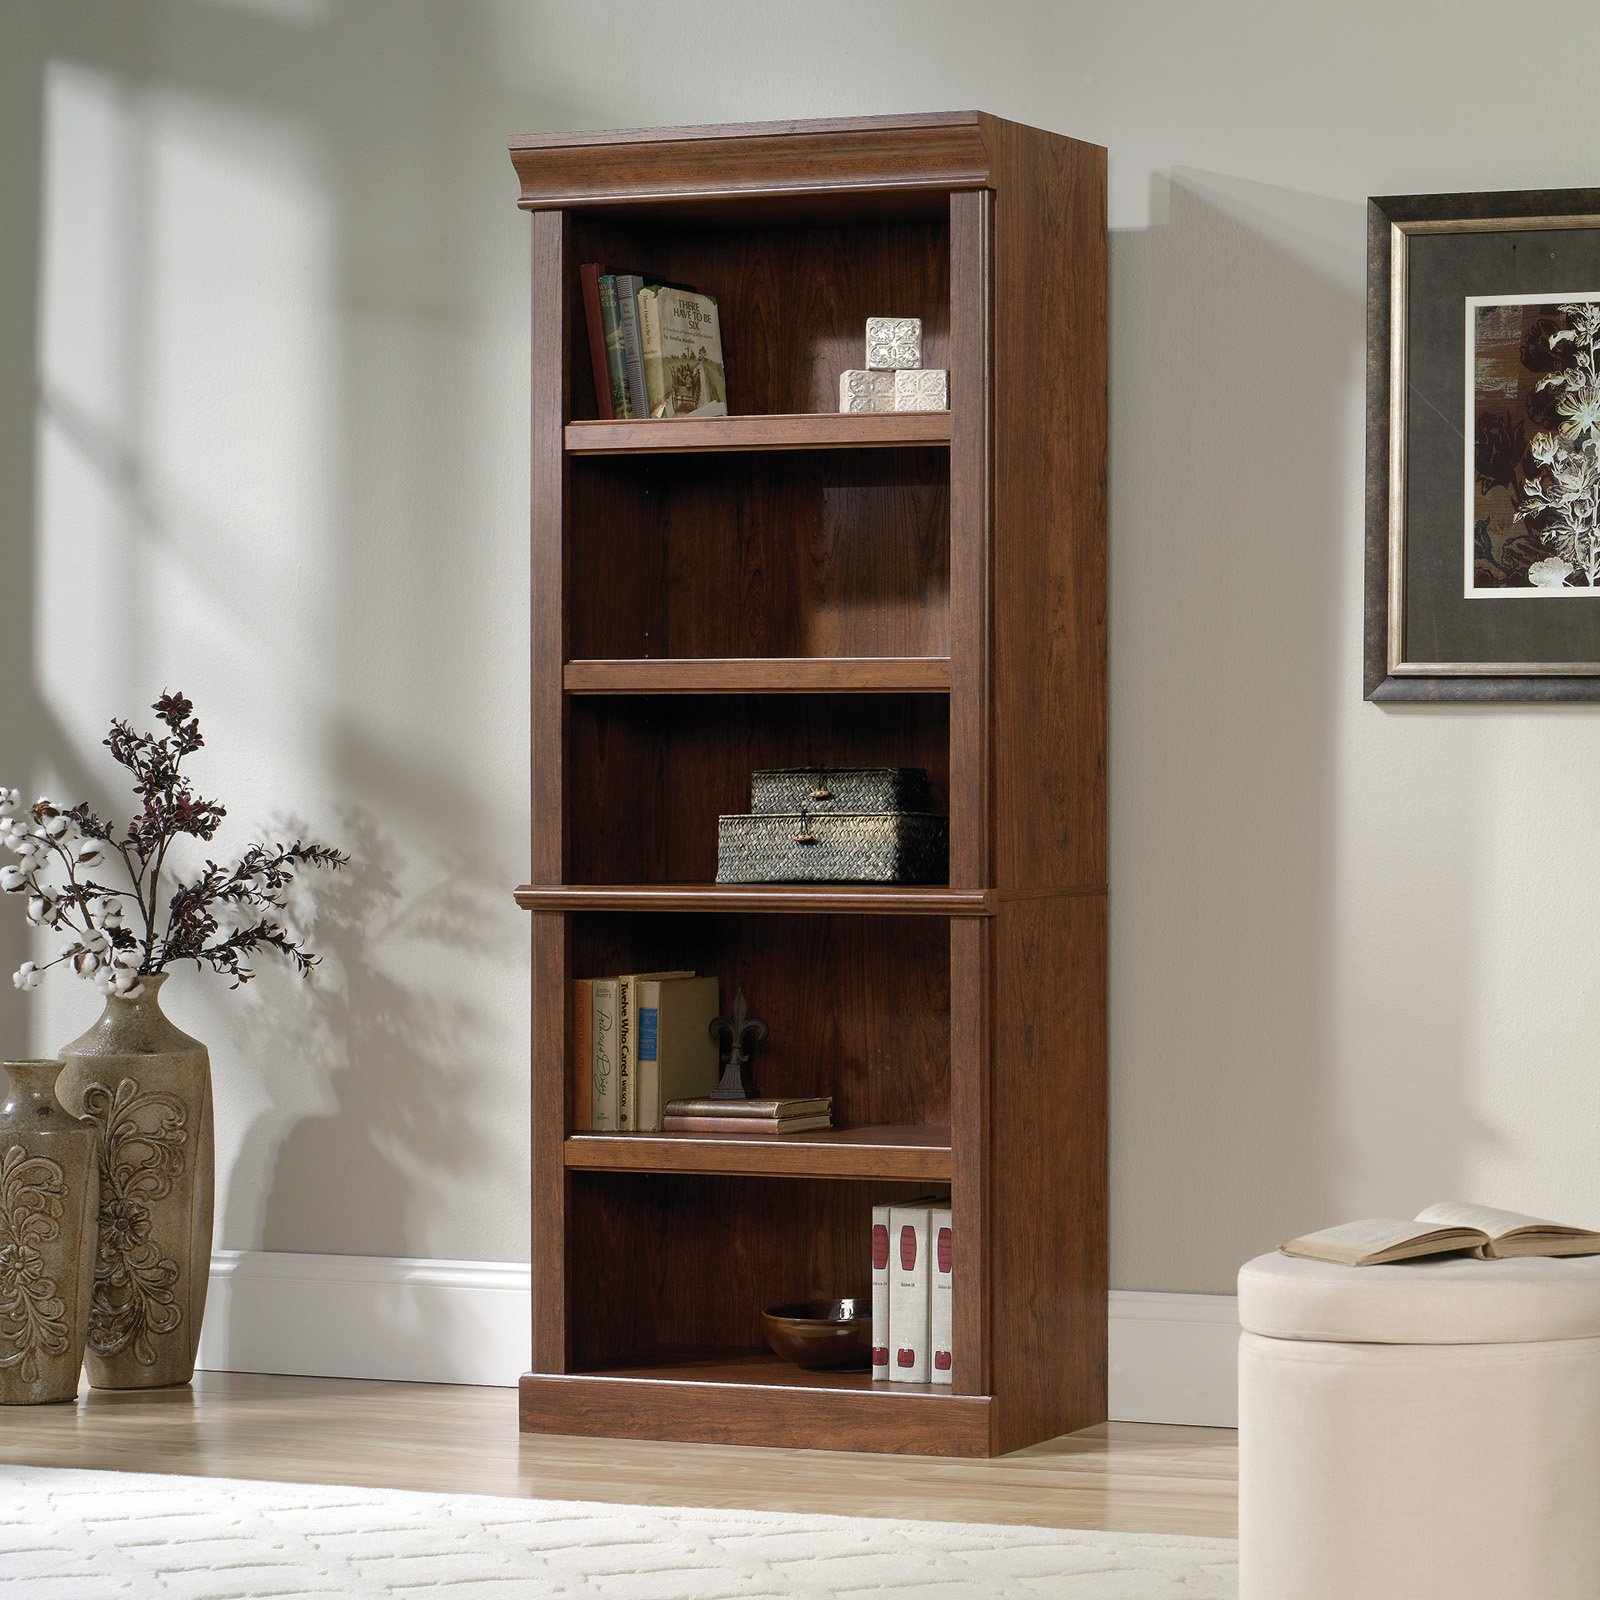 Sauder Orchard Hills Library Bookcase with Optional Doors